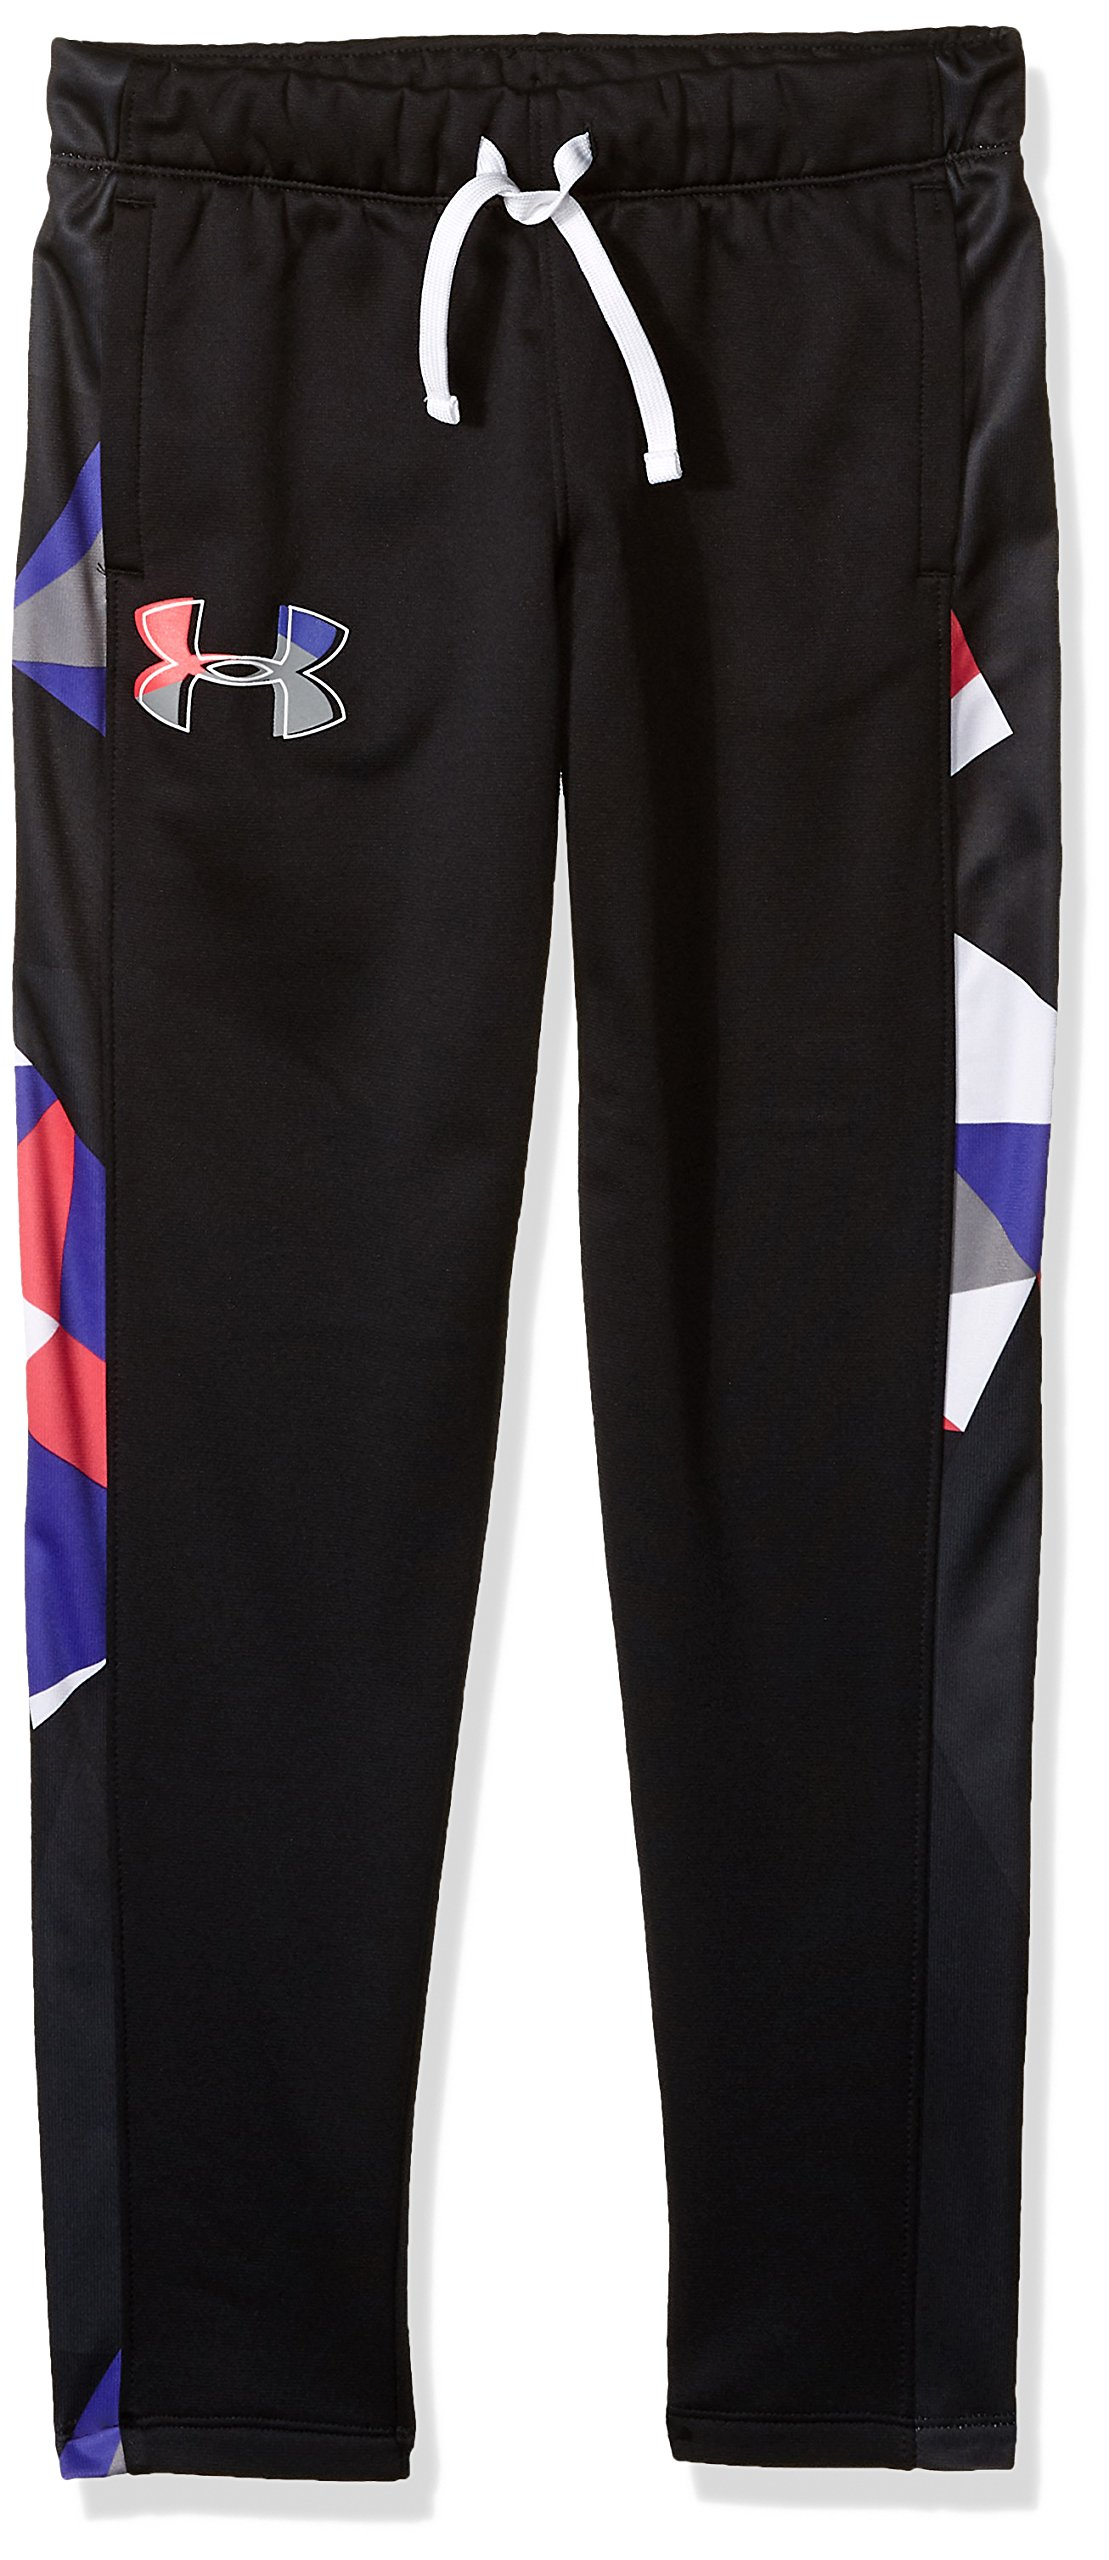 Under Armour Girls Armour Fleece Pants, Black (001)/Penta Pink, Youth X-Large by Under Armour